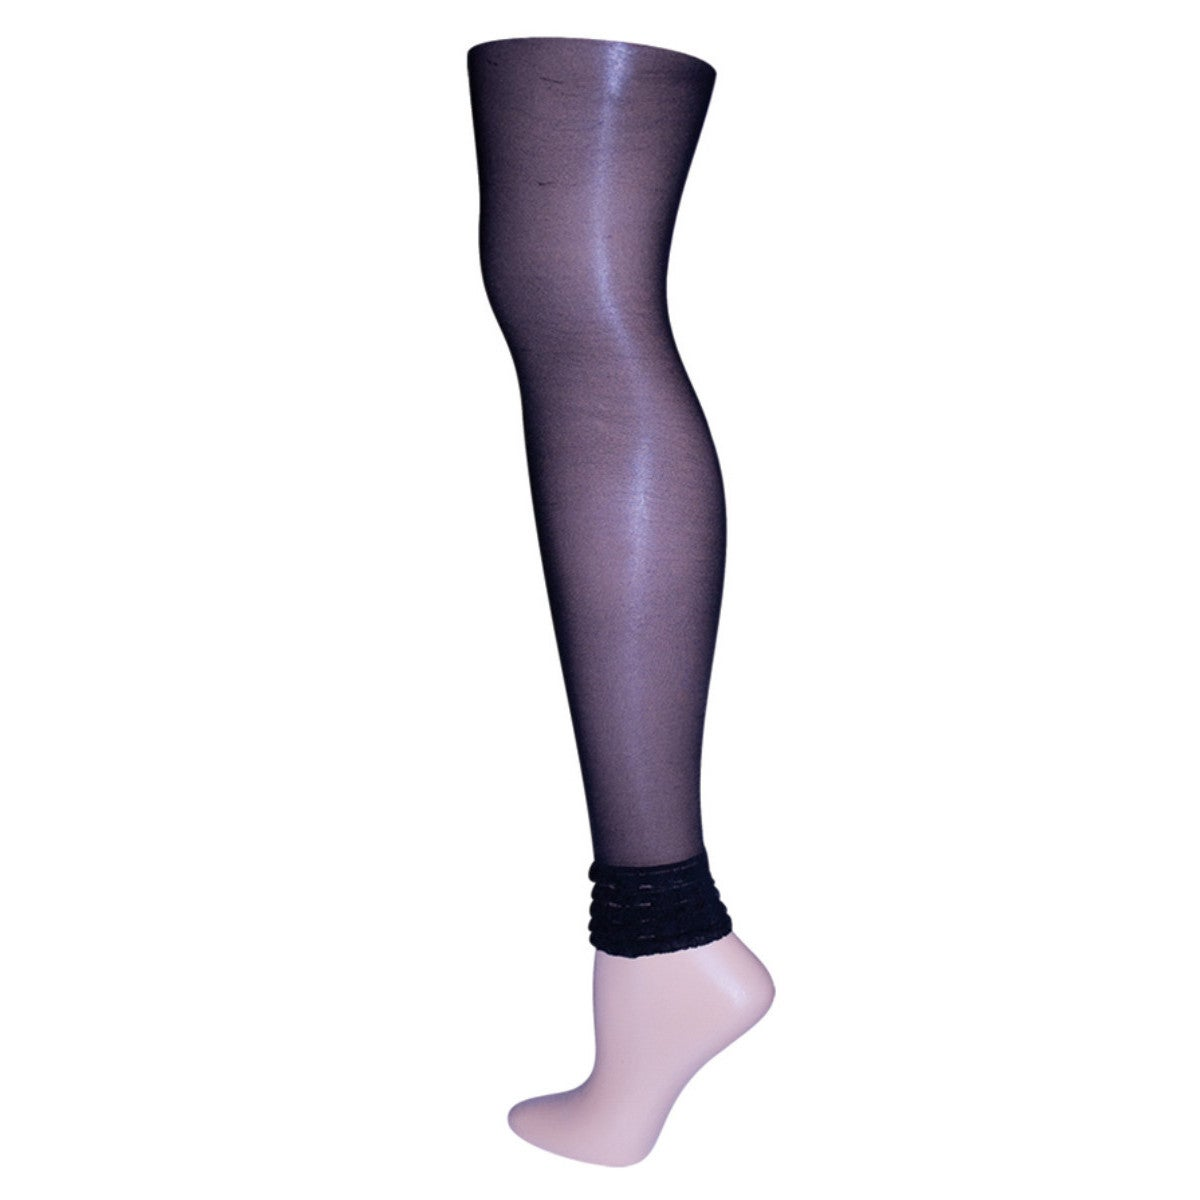 3edee52ba Memoi Layered Ruffles Sheer Footless Tights Black Small/medium | eBay